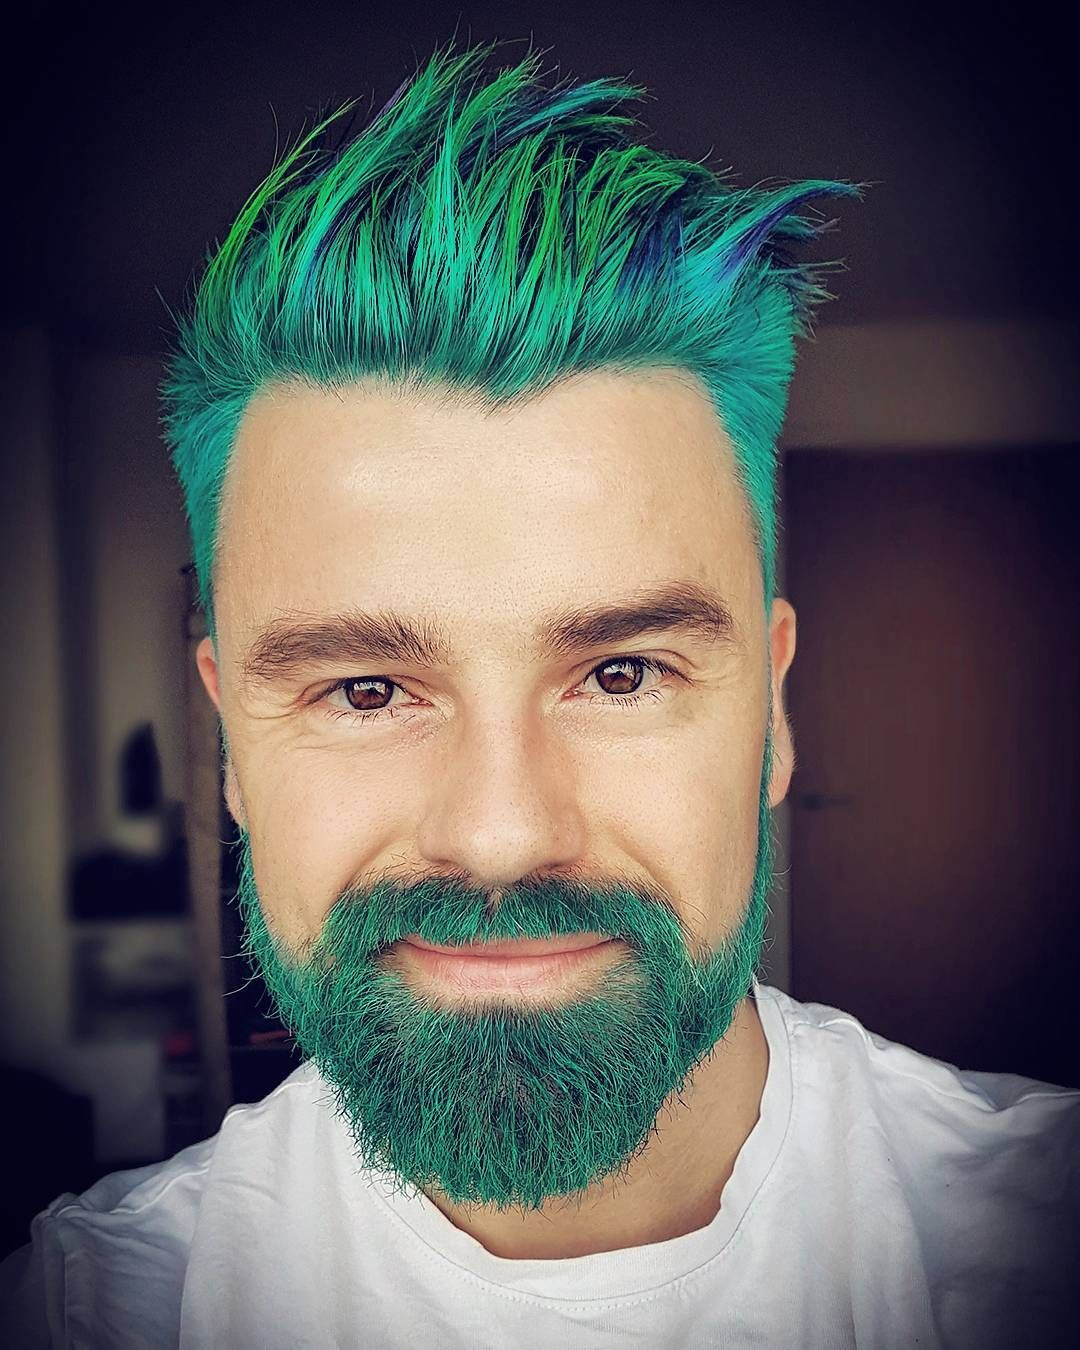 mr_lina Turquoise Blue Teal Green man beard | Hair Color ...